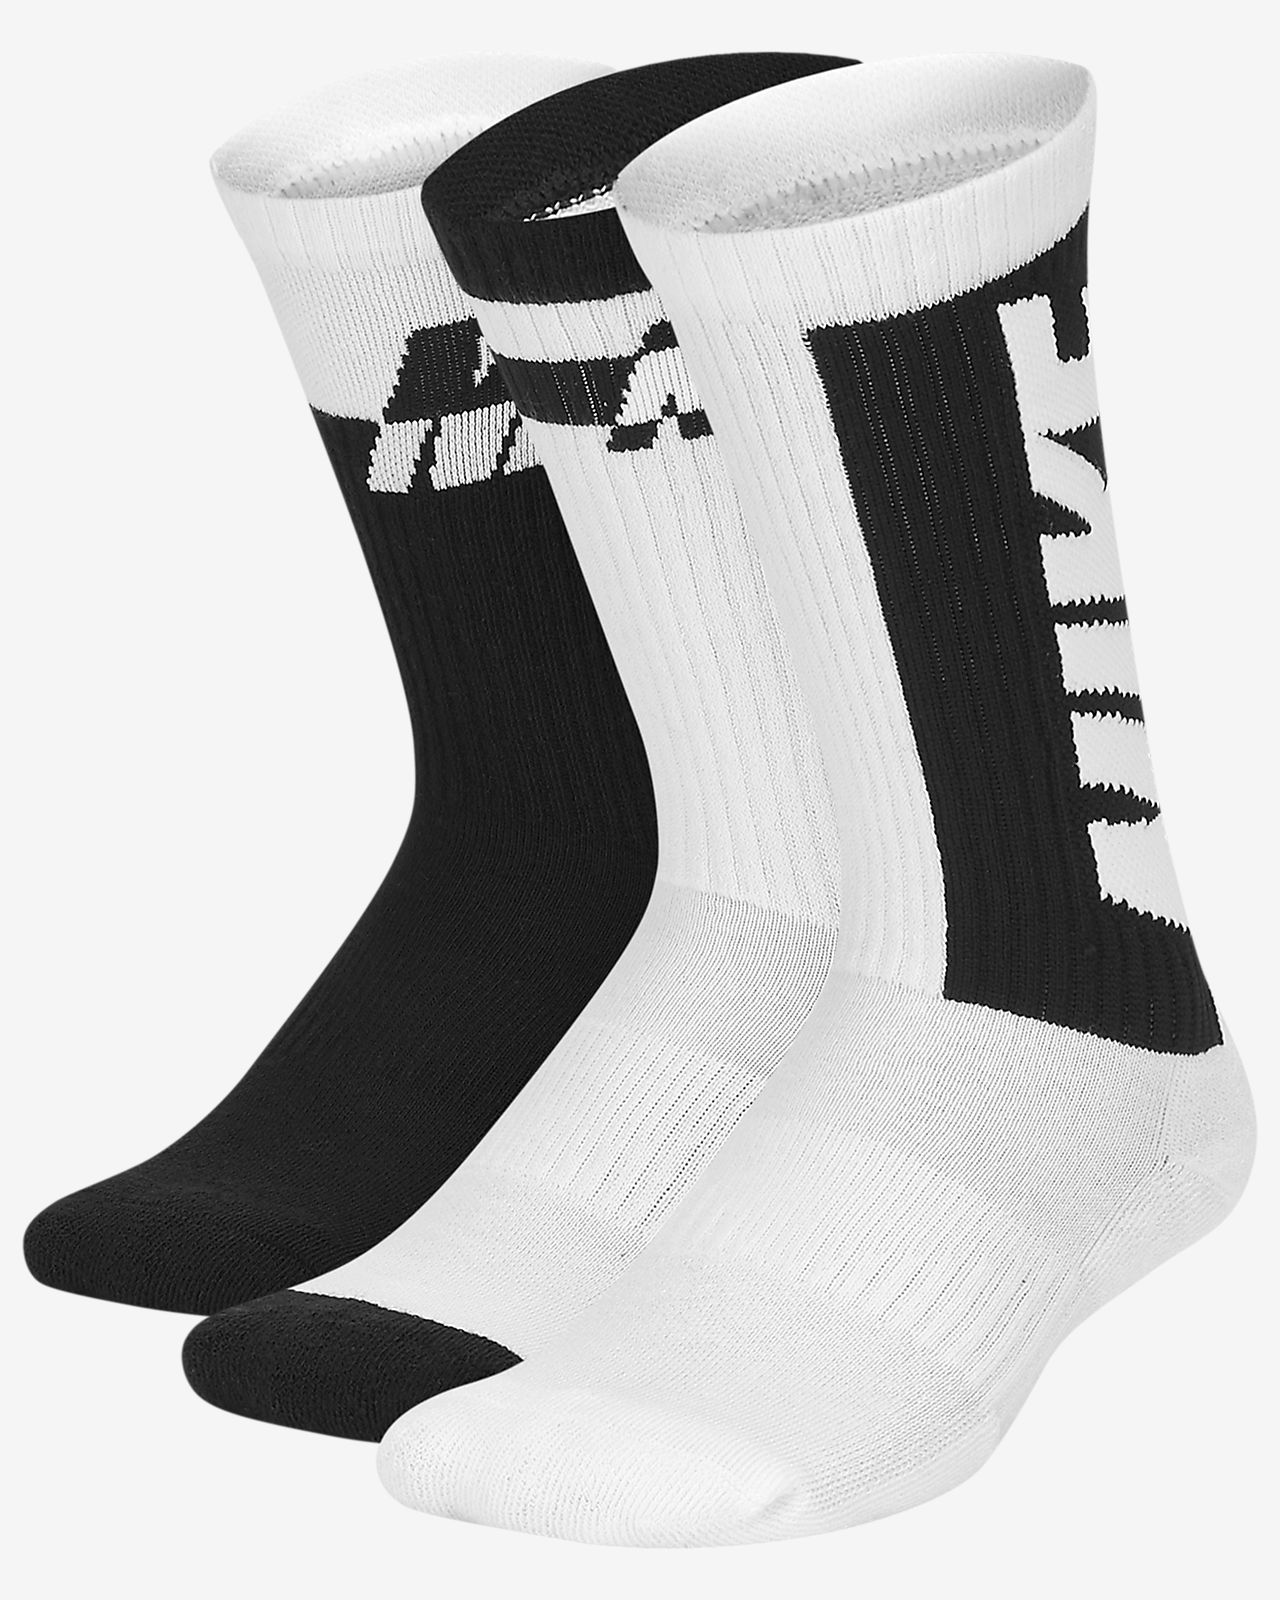 Nike Equipment SX5572-P Sporting Goods 3 Pairs NIKE Kids Everyday Max Cushion Crew Socks